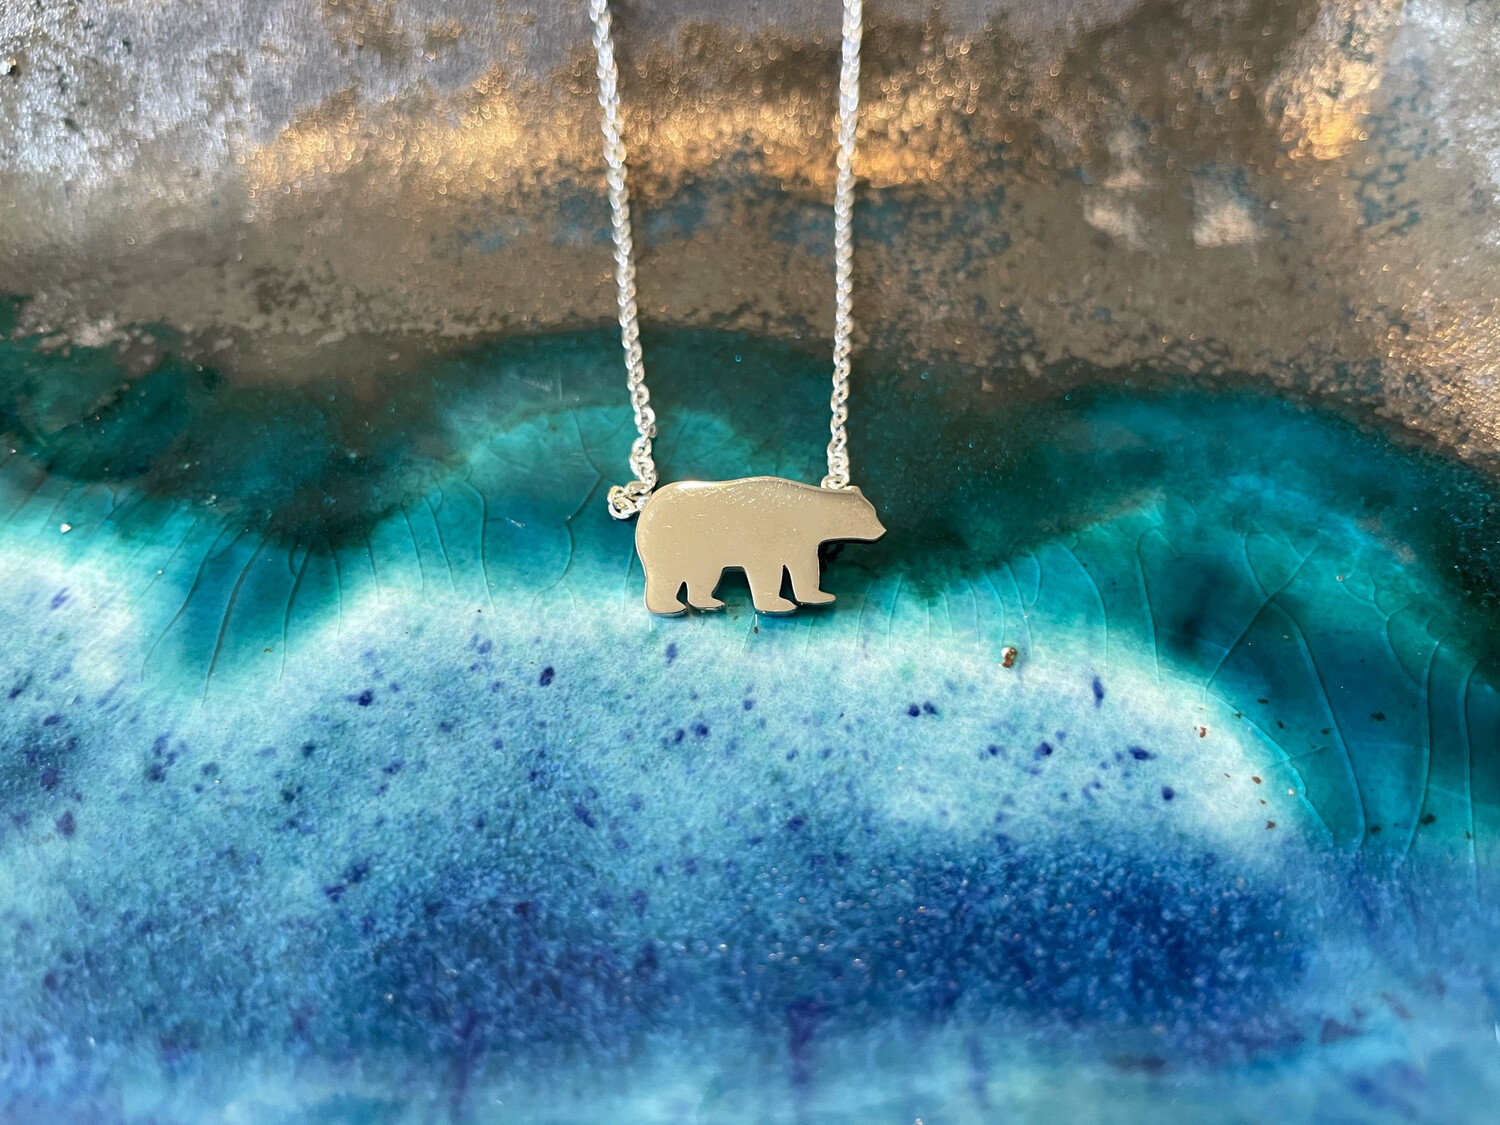 Mini Bear Necklace - Stainless Steel